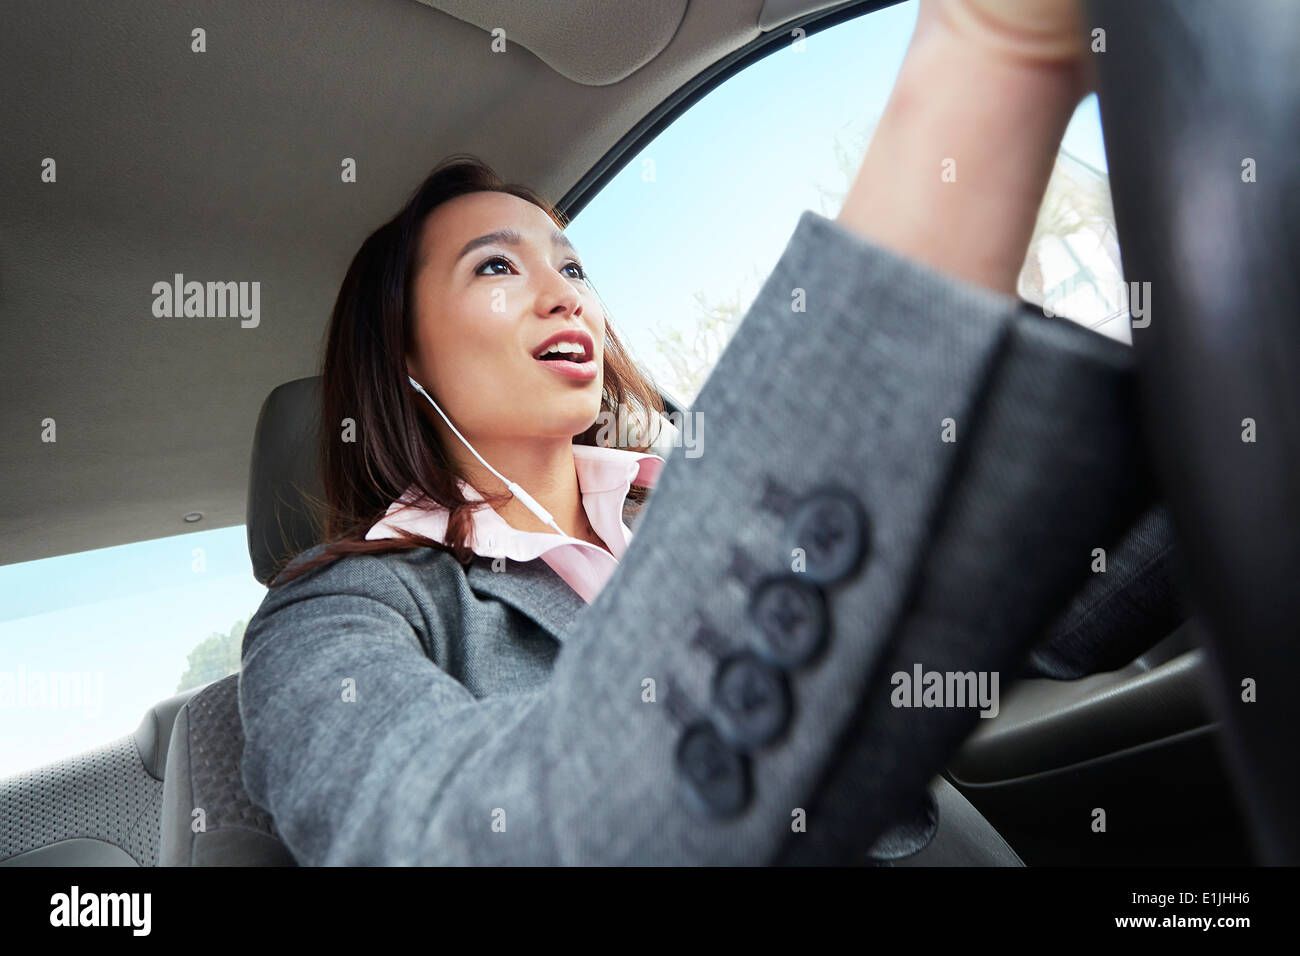 Young female businesswoman driving car - Stock Image